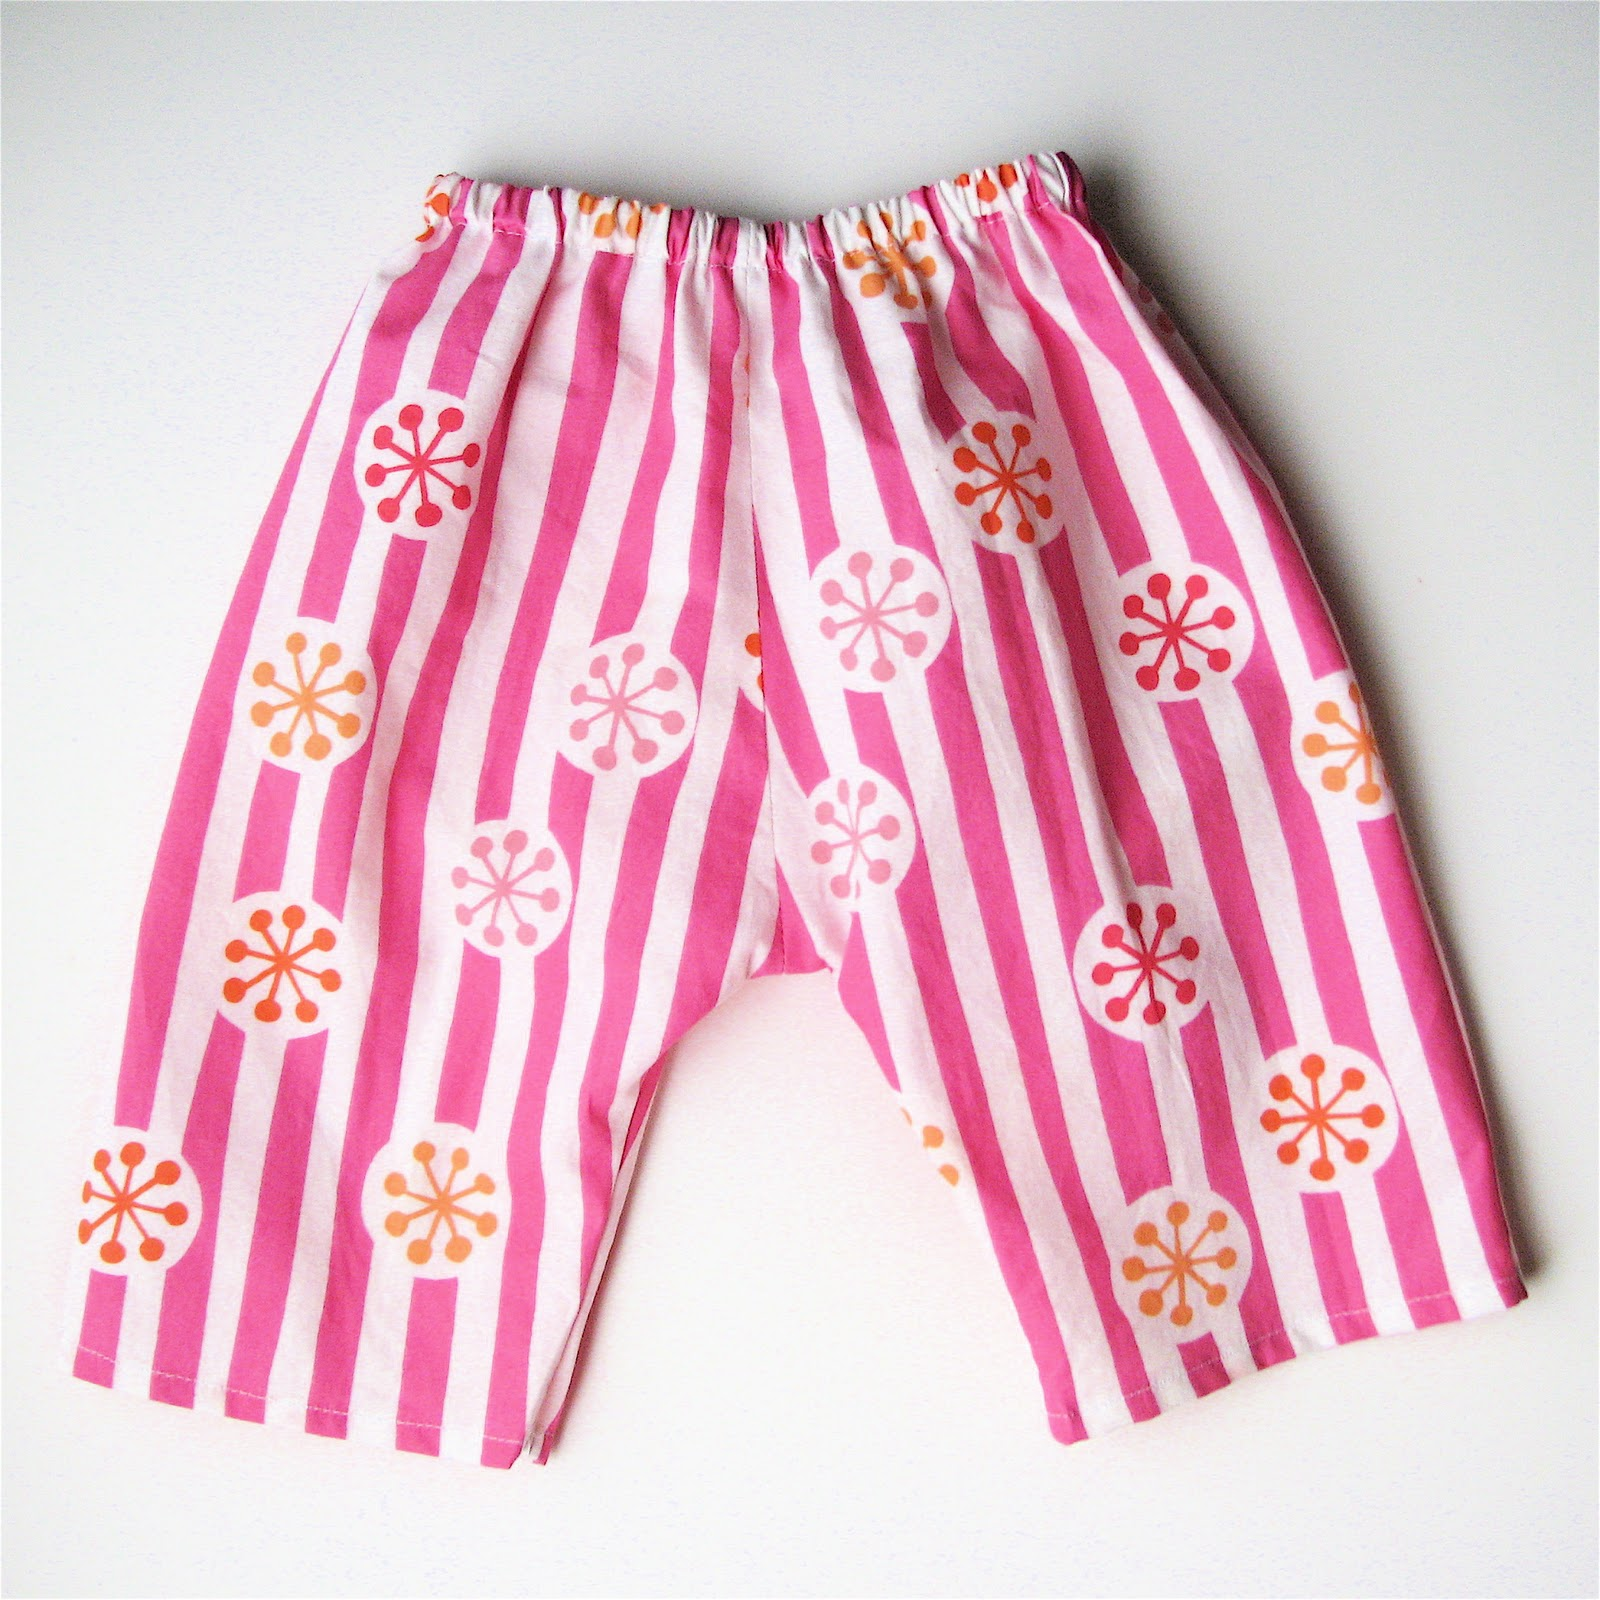 Free Rae s Basic Newborn Pant Sewing Pattern Made By Rae